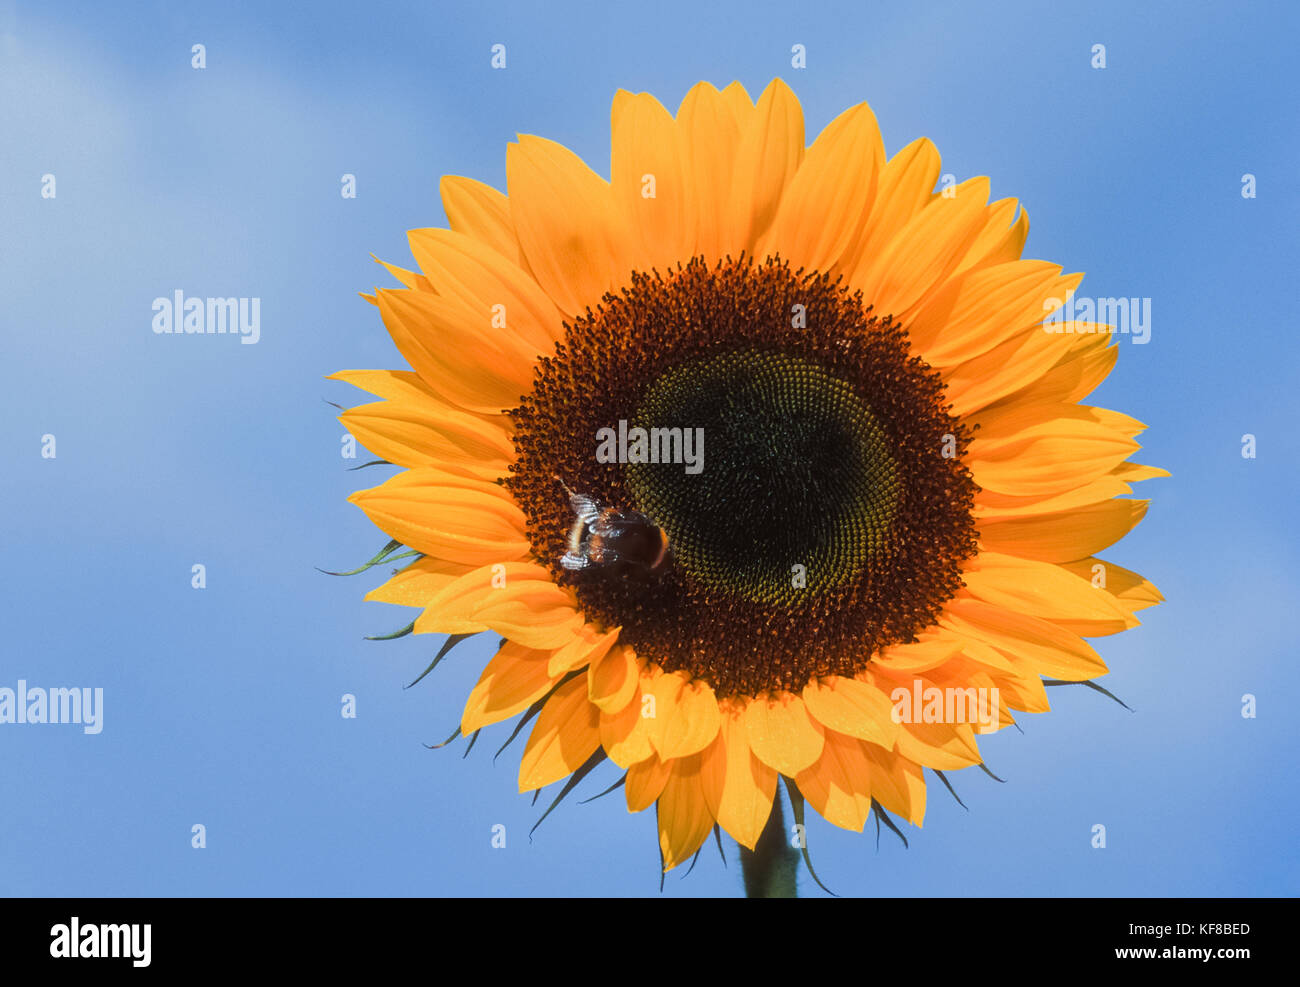 worker Buff-tailed bumblebee, (Bombus terrestris), nectar feeding on Helianthus or sunflower, (Helianthus annuus), - Stock Image